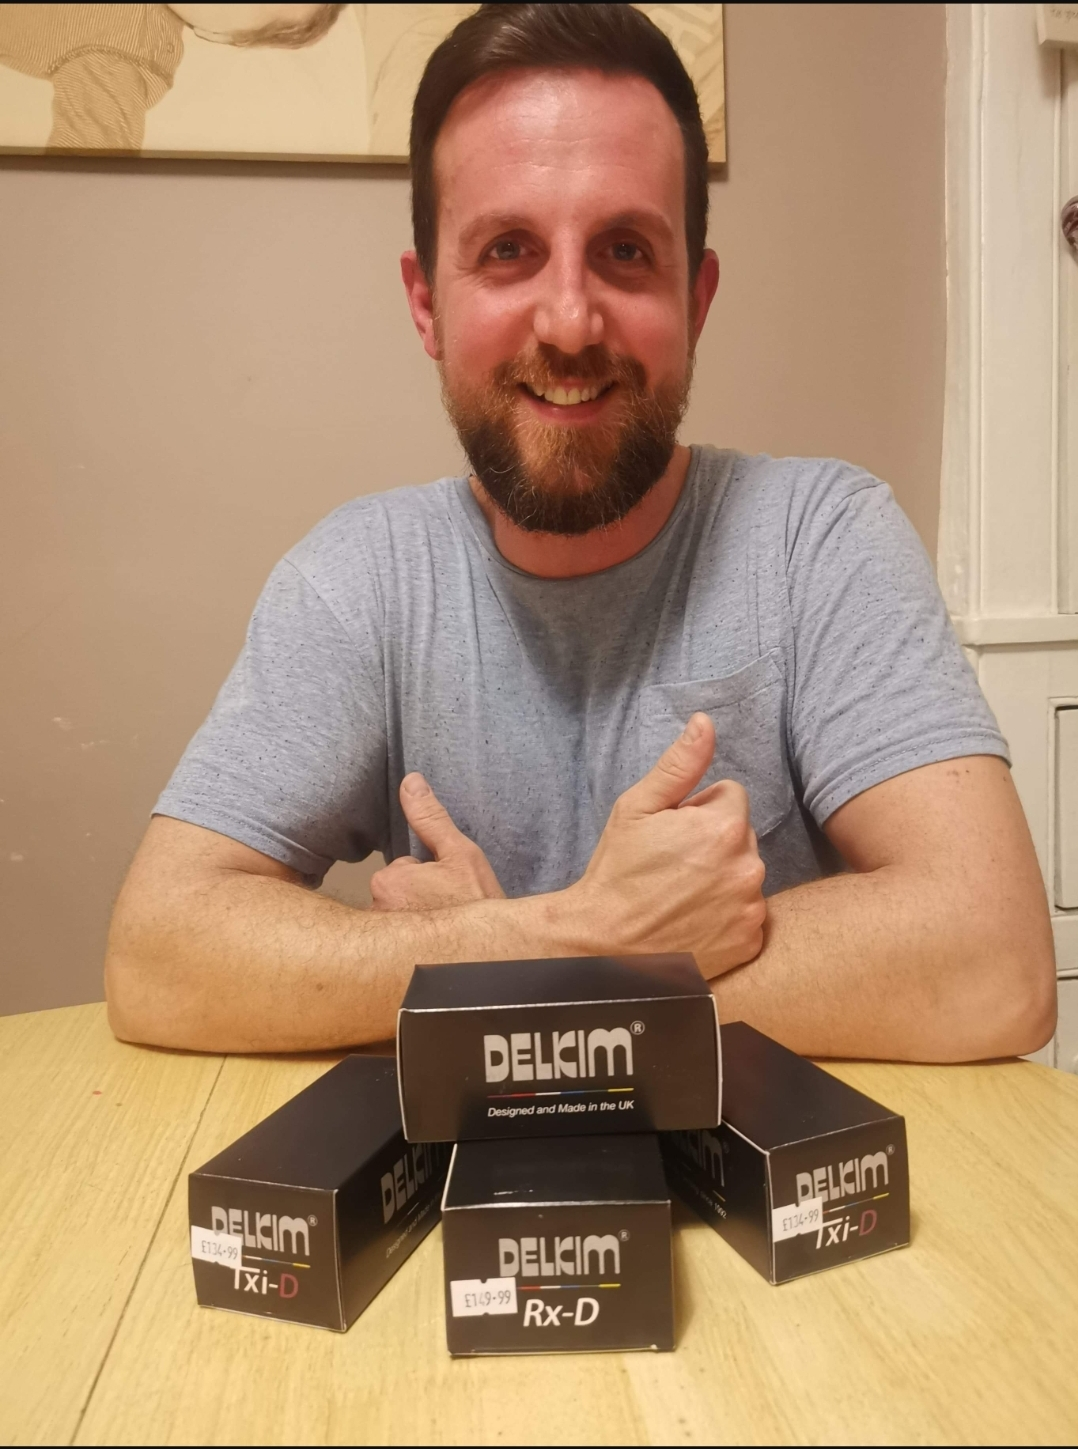 Daniel Holland wins a set of Delkim TXI D and Receiver!